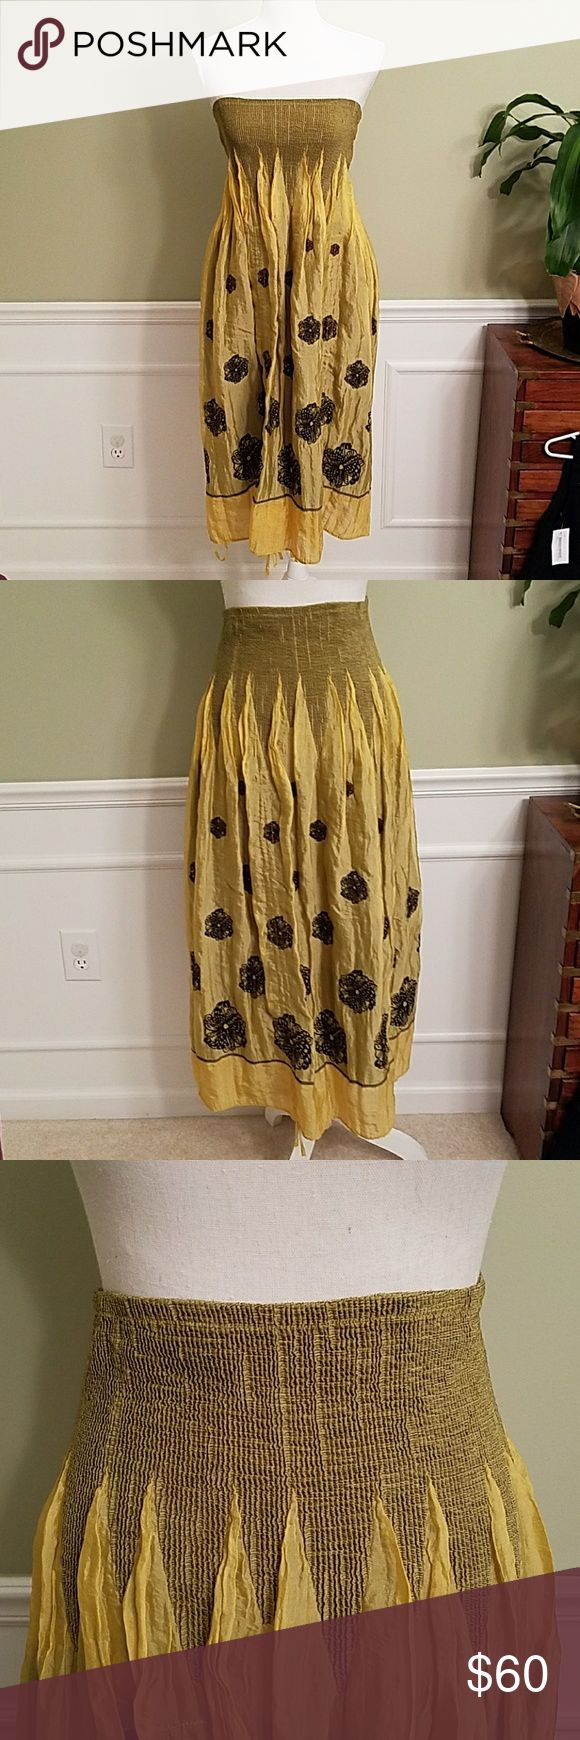 """Anthropologie Lapis Dress Skirt Combo Excellent pre loved condition dress from Lapis.  Can be worn as a dress or skirt with ties at the hem to adjust the length. Size is actually one size on the tags. Color is a gold yellow with chocolate brown stitching. Very stretchy topline. Measurements laying flat are 35""""length , 13.5""""across the chest. Anthropologie Dresses Midi"""